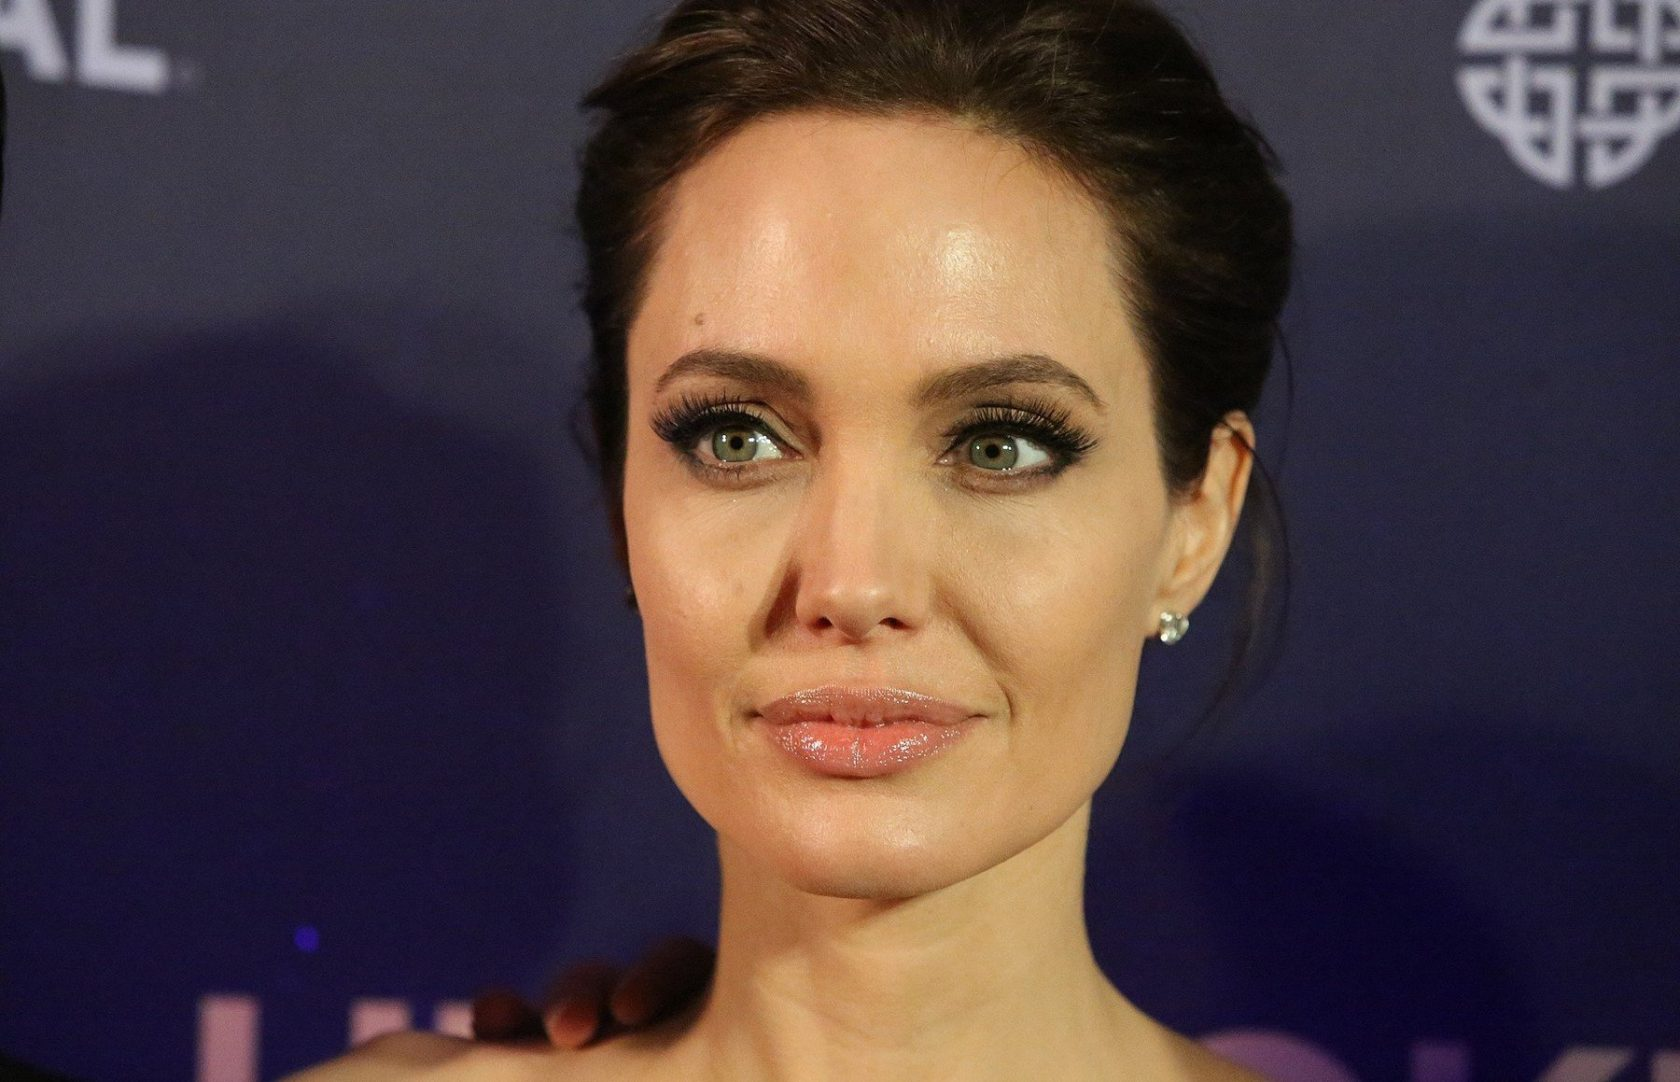 November 17, 2014: Angelina Jolie attends the world premiere of 'Unbroken' at the State Theatre in Sydney, Australia., Image: 211124182, License: Rights-managed, Restrictions: CODE000, Model Release: no, Credit line: Profimedia, INF